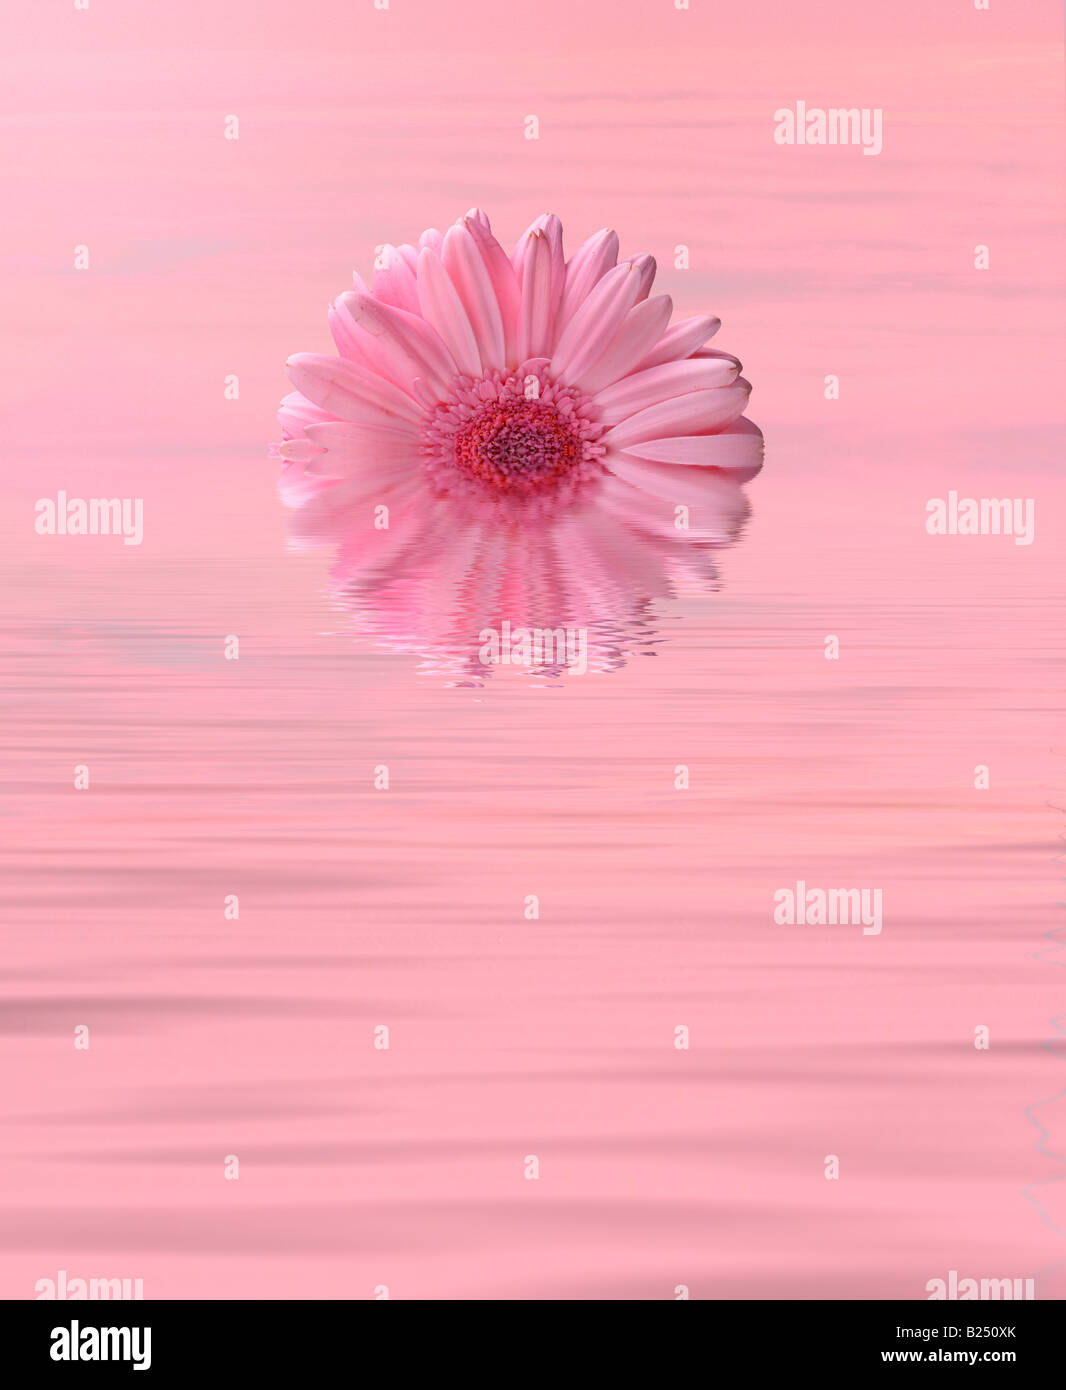 Pink flower over gently rippling water - Stock Image